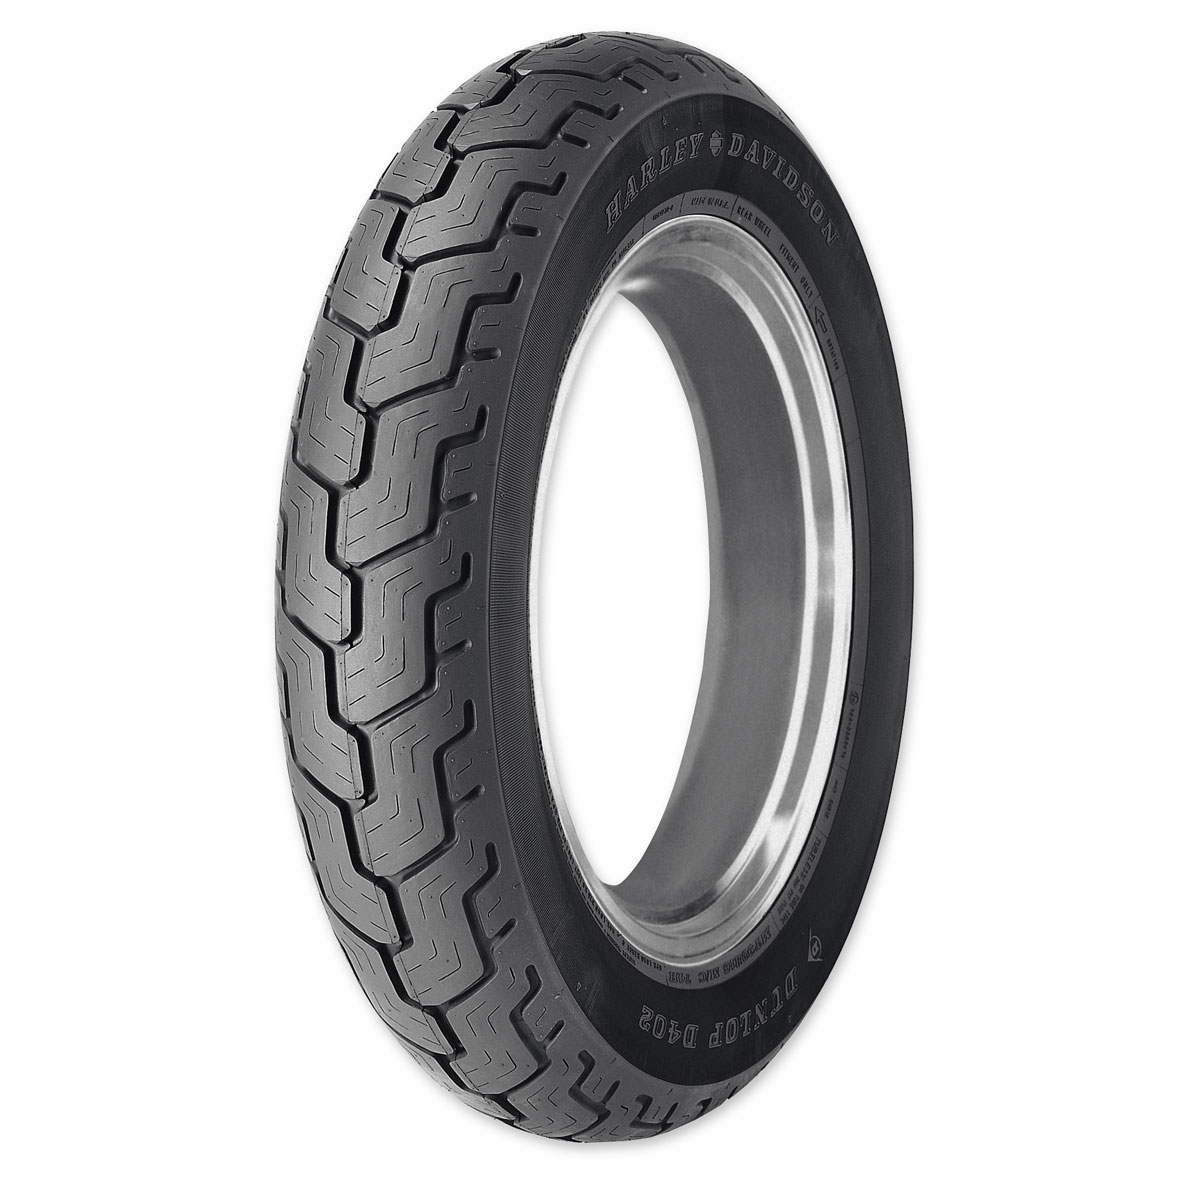 Dunlop d402 mt90b16 rear tire 214 002 jp cycles select your motorcycle to guarantee fitment select a motorcycle dunlop d402 mt90b16 rear tire geenschuldenfo Image collections